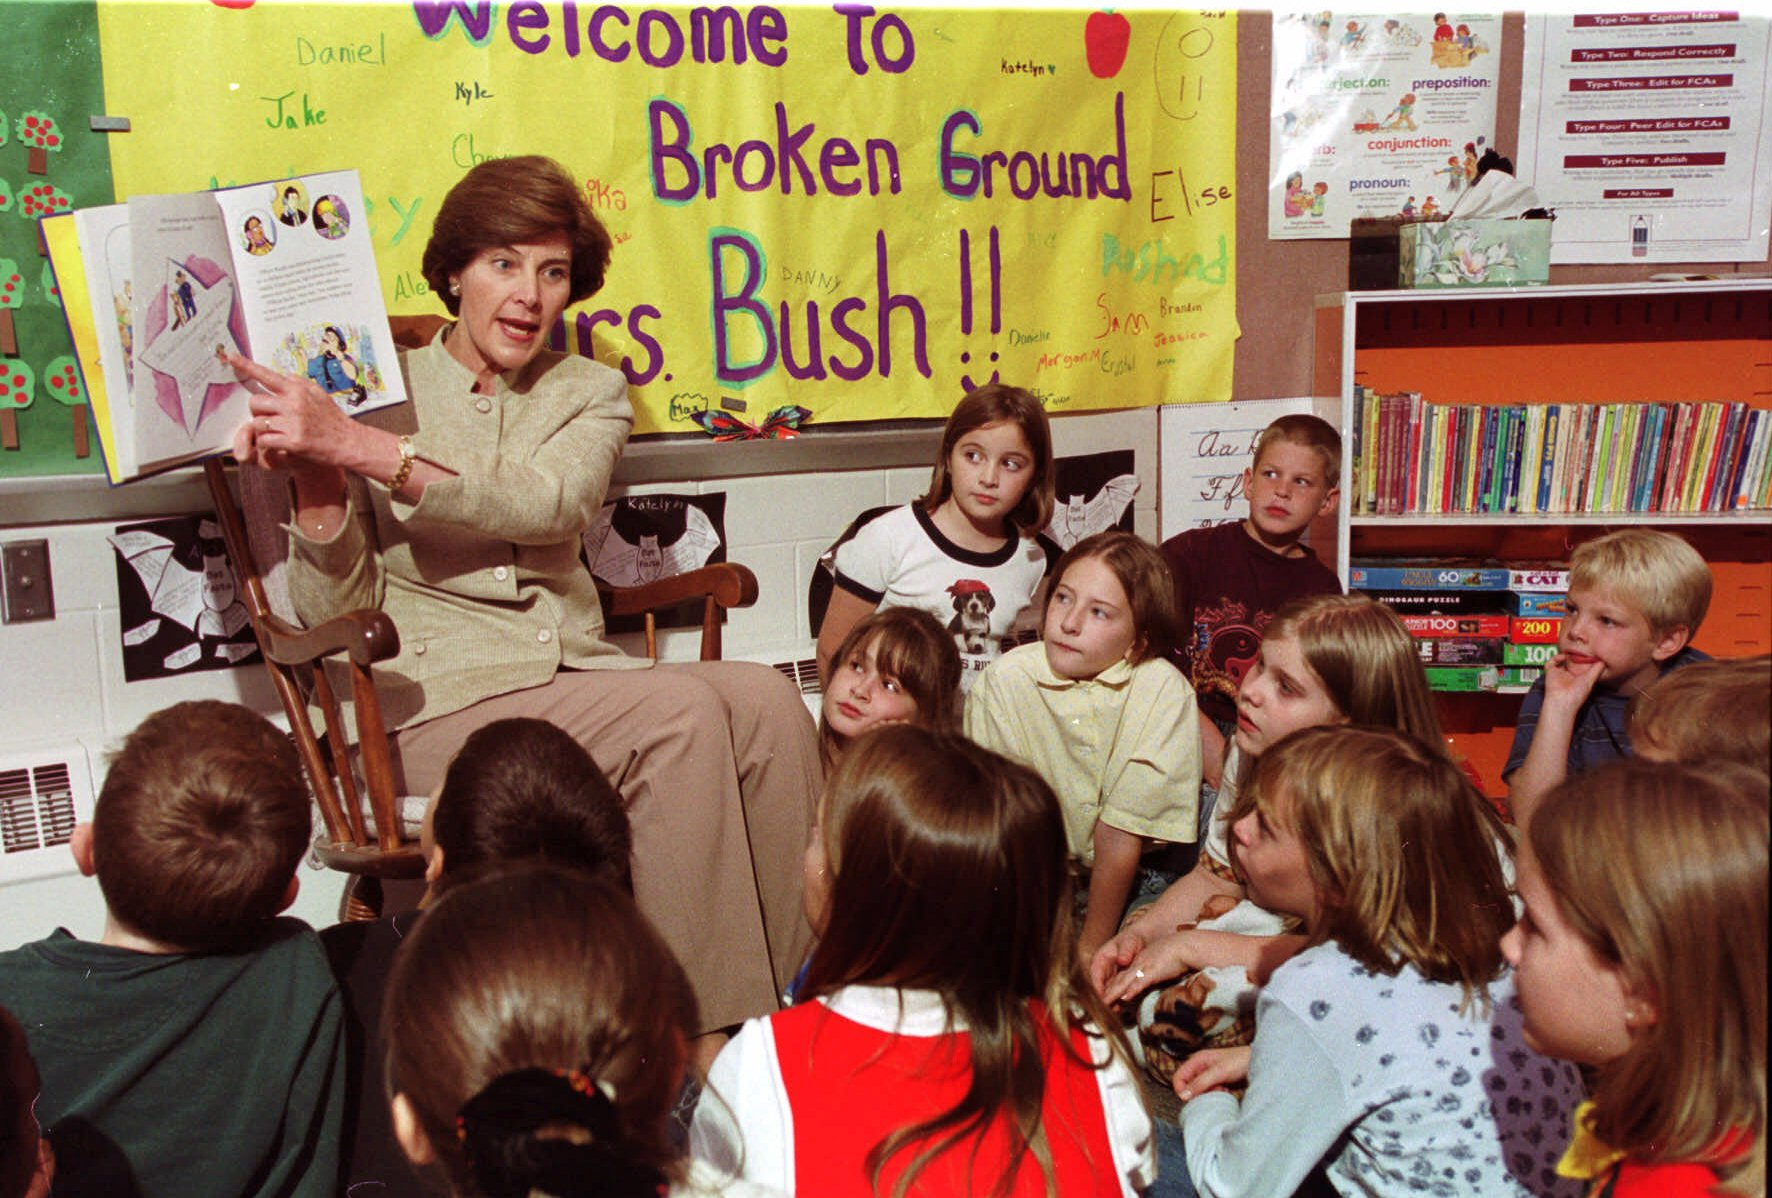 <div class='meta'><div class='origin-logo' data-origin='none'></div><span class='caption-text' data-credit='AP Photo/Jim Cole'>Laura Bush, wife of Republican presidential hopeful Texas Gov. George W. Bush, reads to students at the Broken Ground School in Concord, N.H., Tuesday, Oct. 12, 1999.</span></div>